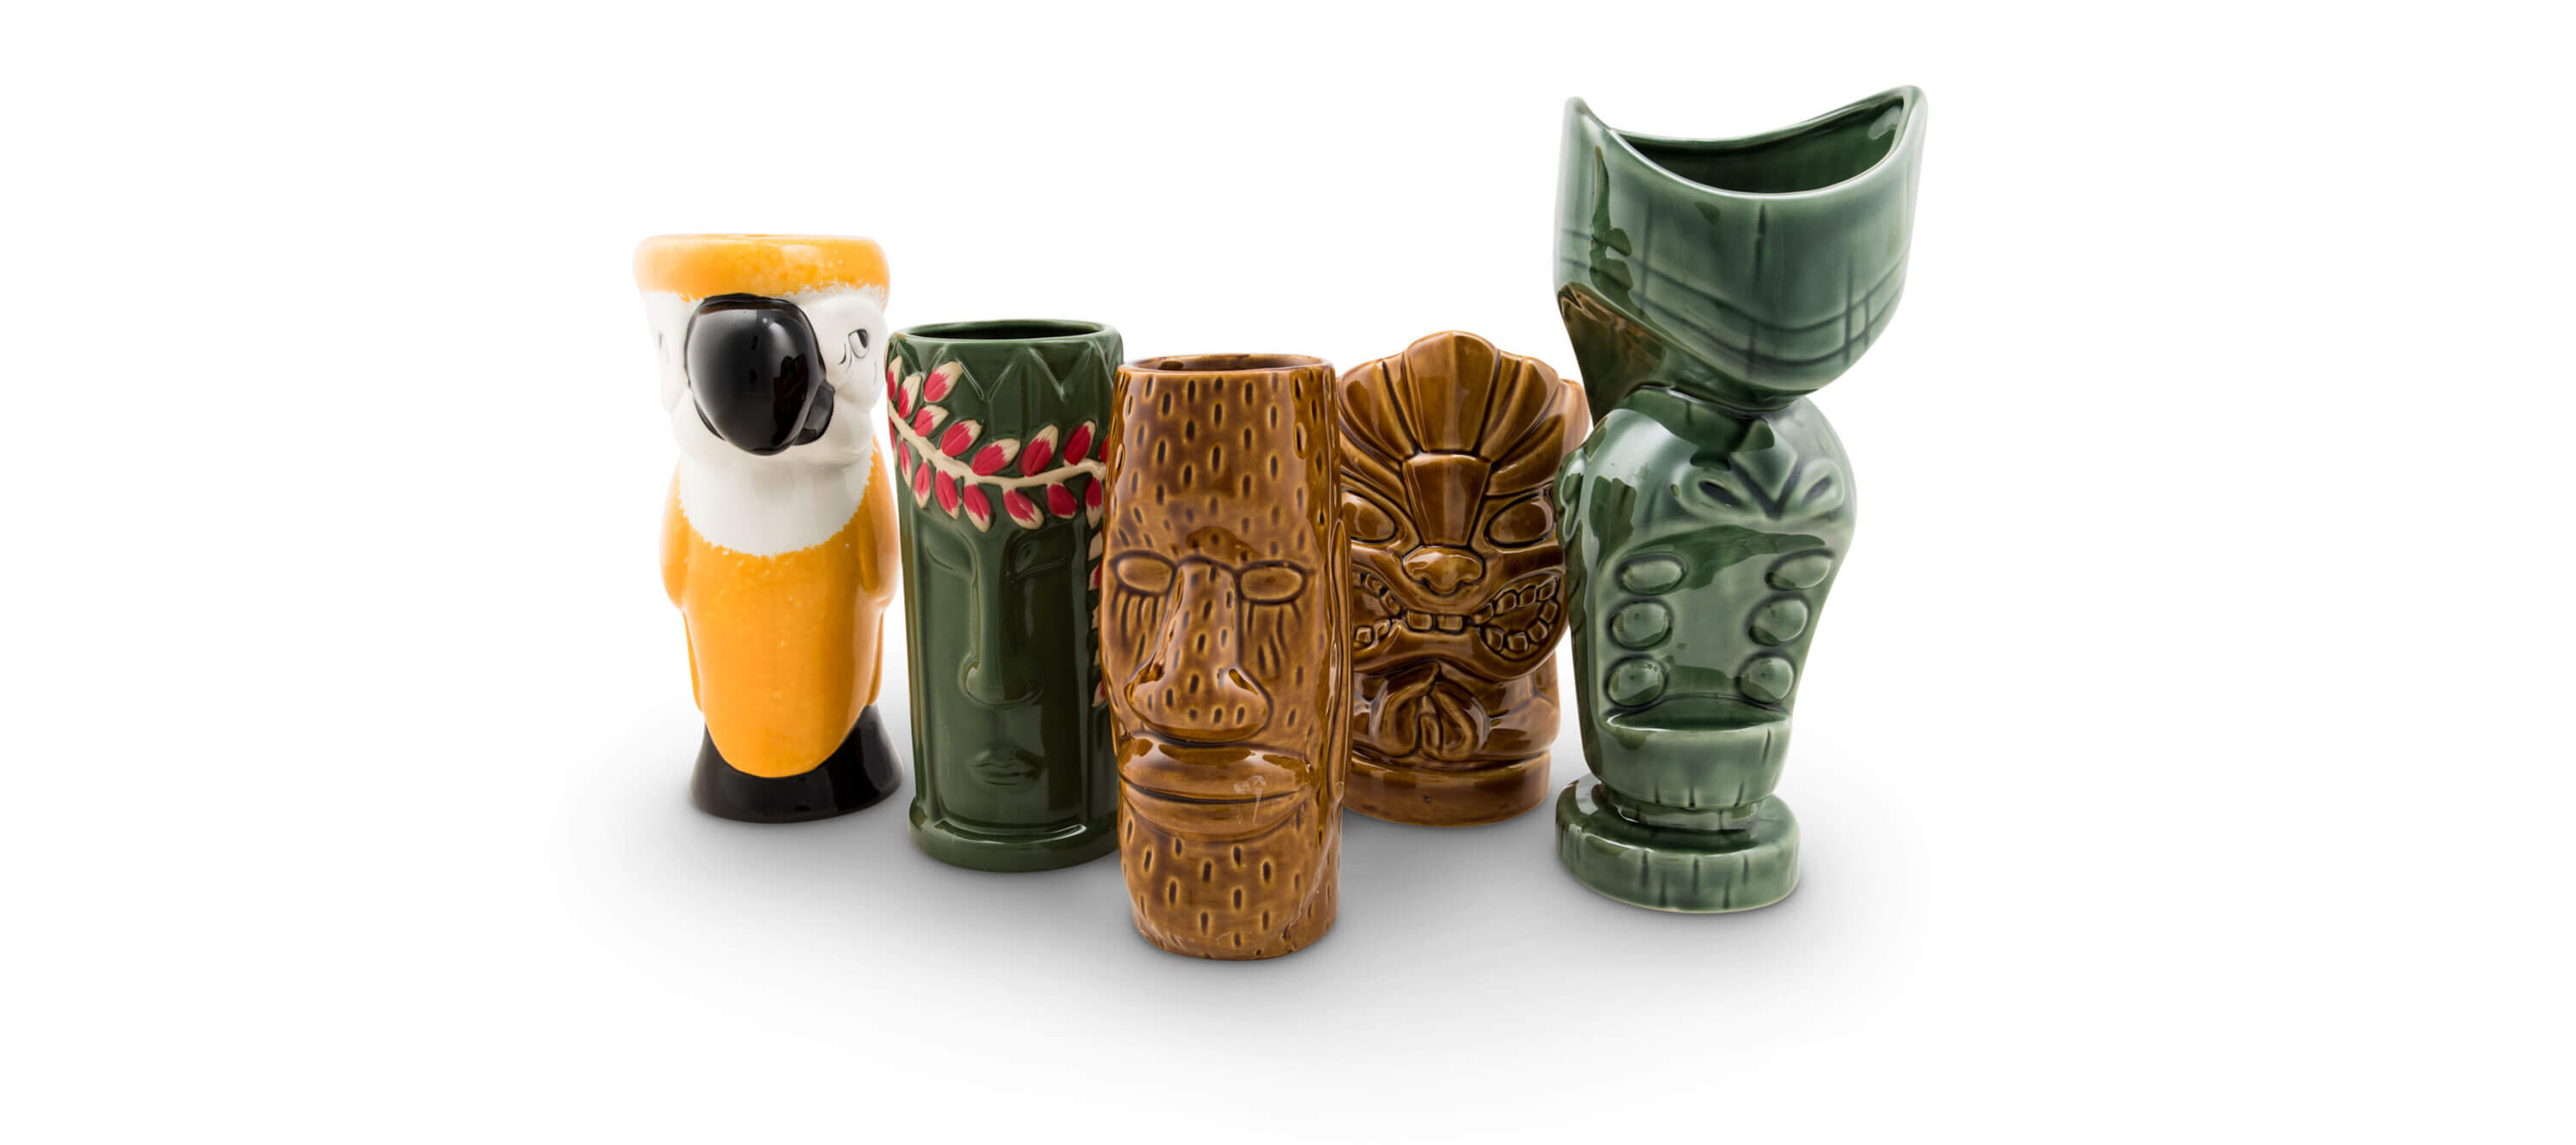 The best unique vintage ceramic tiki cocktail mugs designs Canada USA Fifth & Vermouth